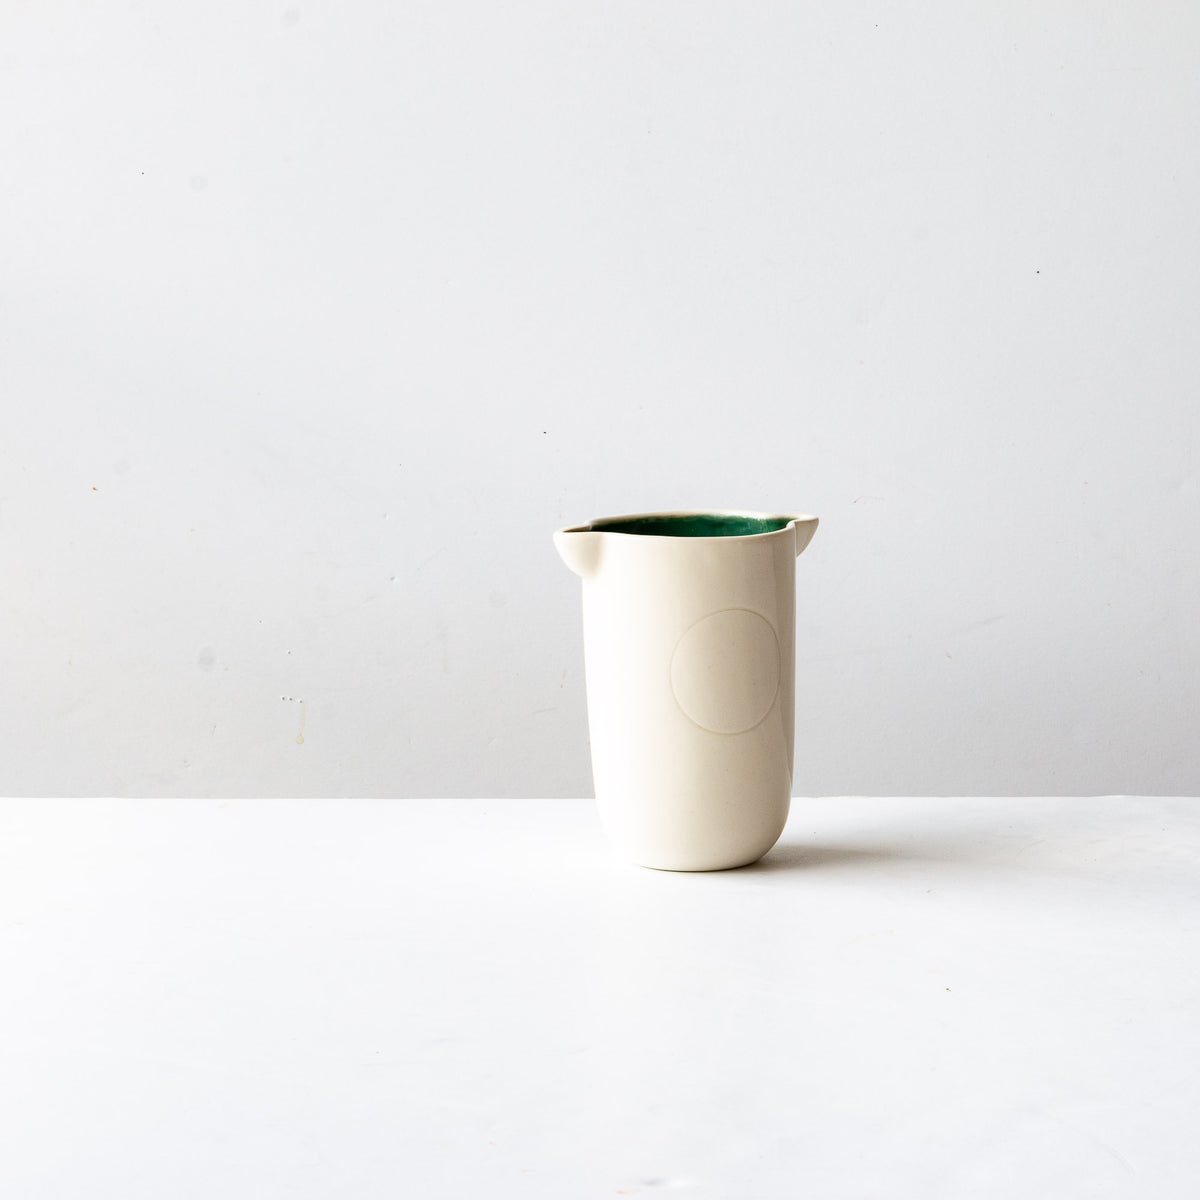 Handmade Tumbler / Small Porcelain Vase - Sold by Chic & Basta